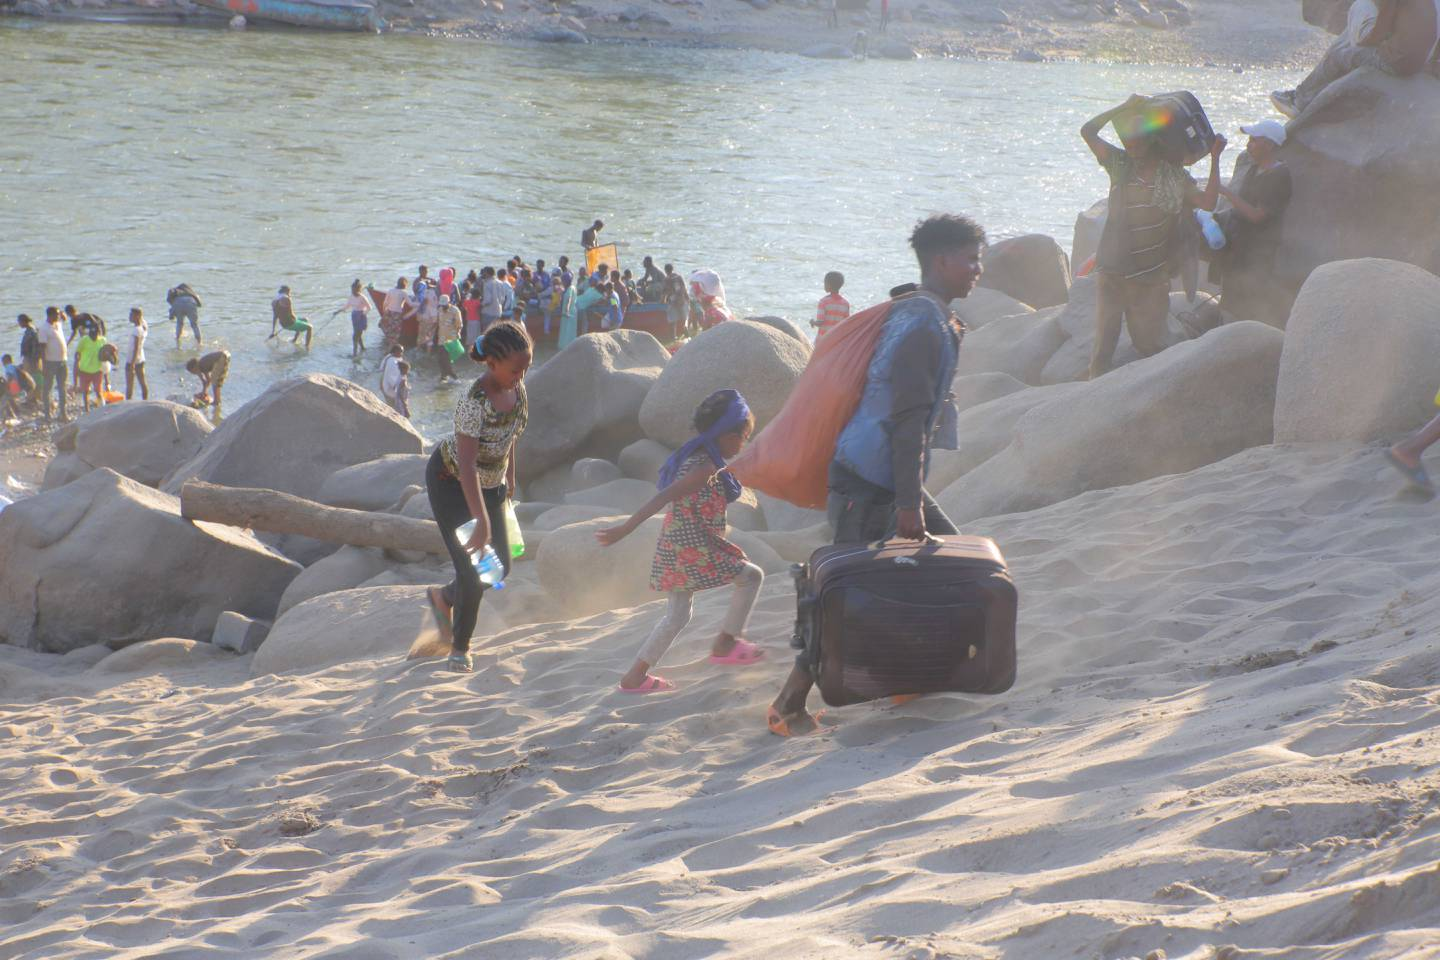 Ethiopian refugees fleeing clashes in the Tigray region, cross the border into Hamdayet, Sudan and navigate the Tekeze river. Courtesy UNHCR